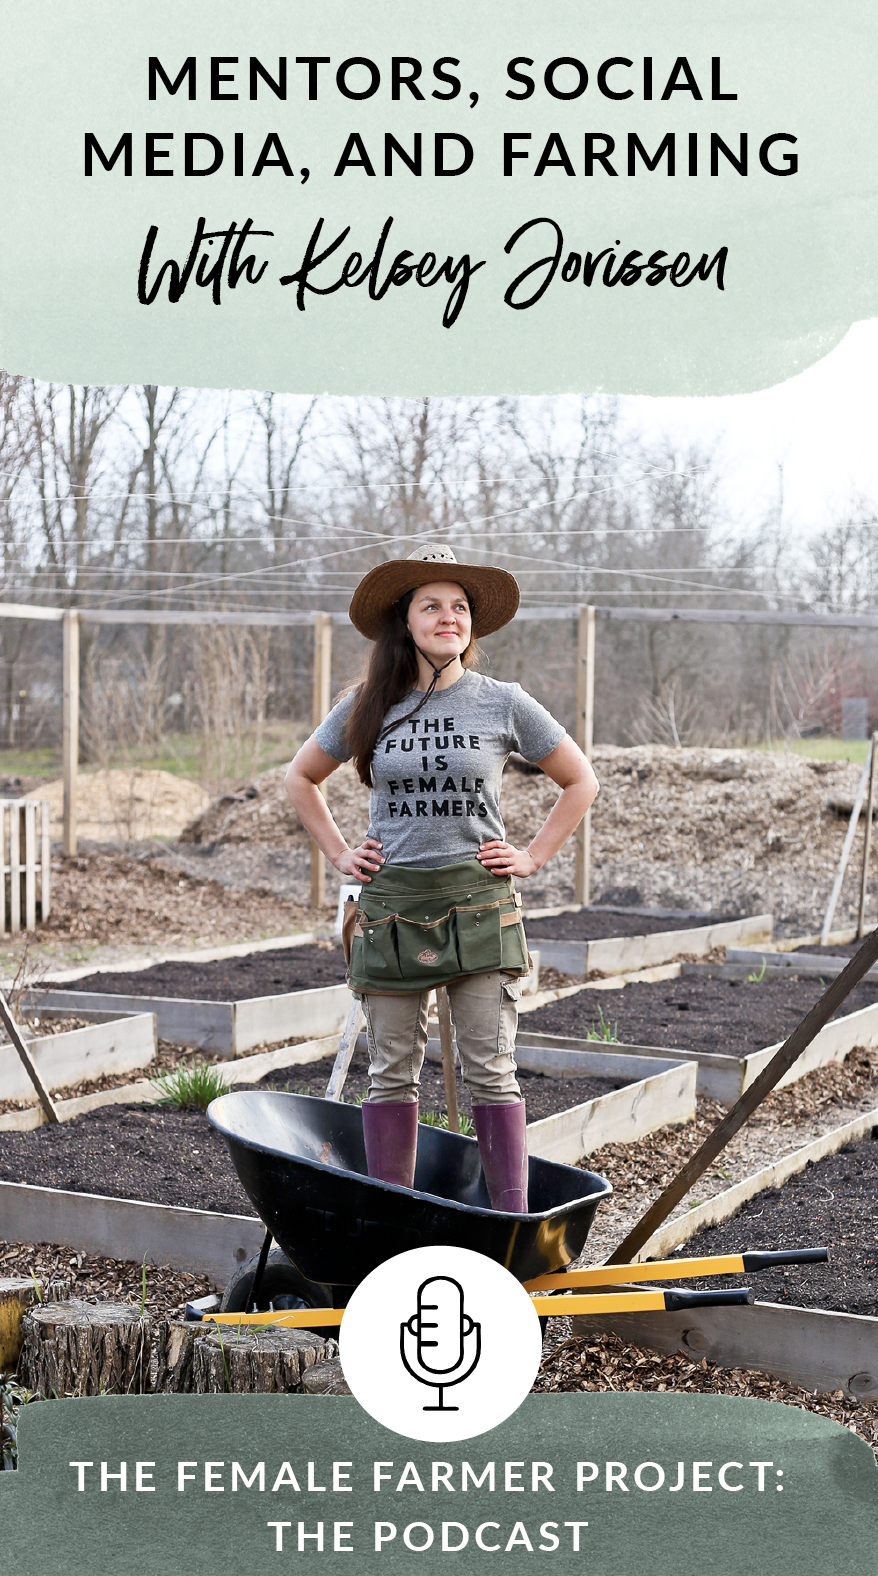 The Female Farmer Podcast Interview with Kelsey Jorissen